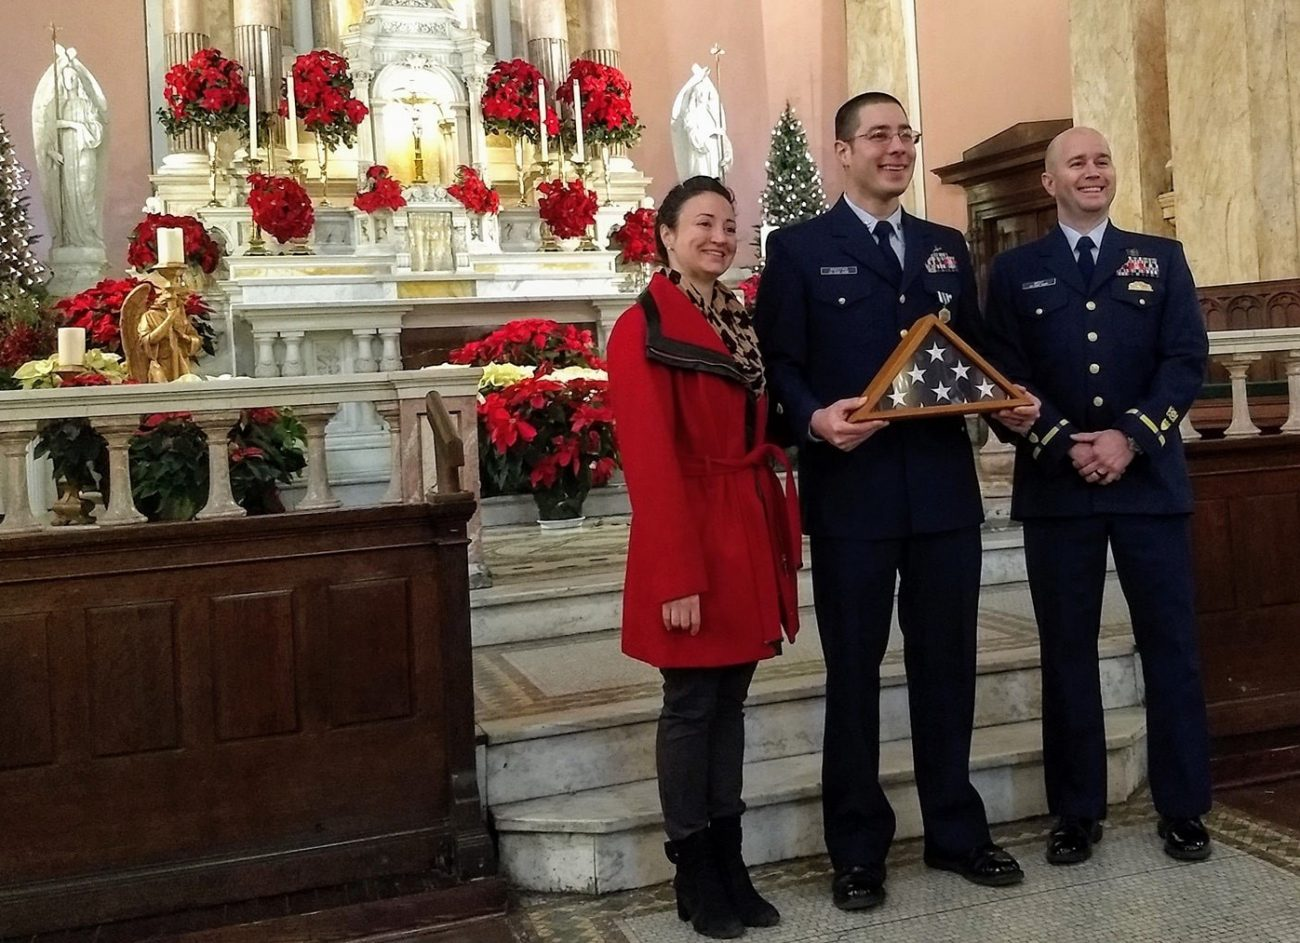 Man of Deep Faith Goes from Guarding the U.S. Coast to Keeping National Shrine Secure